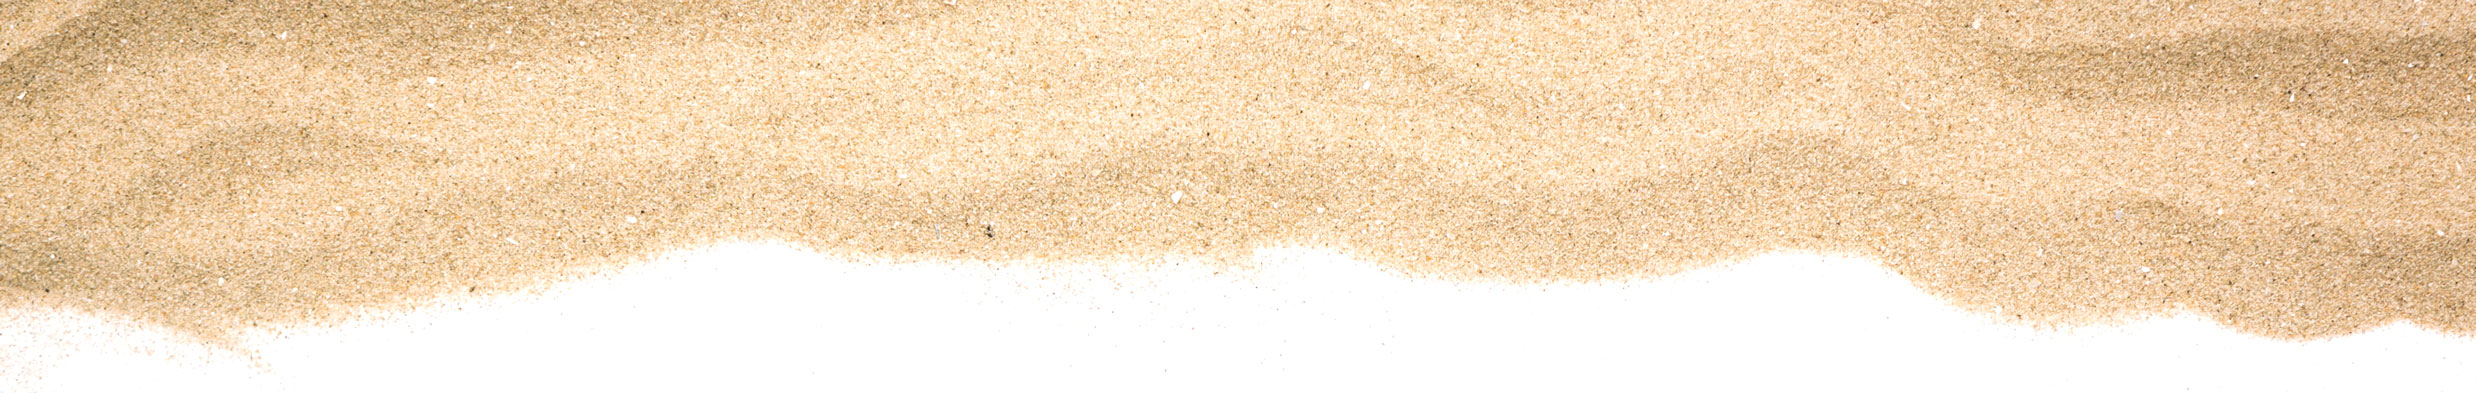 sand-top-mayotte